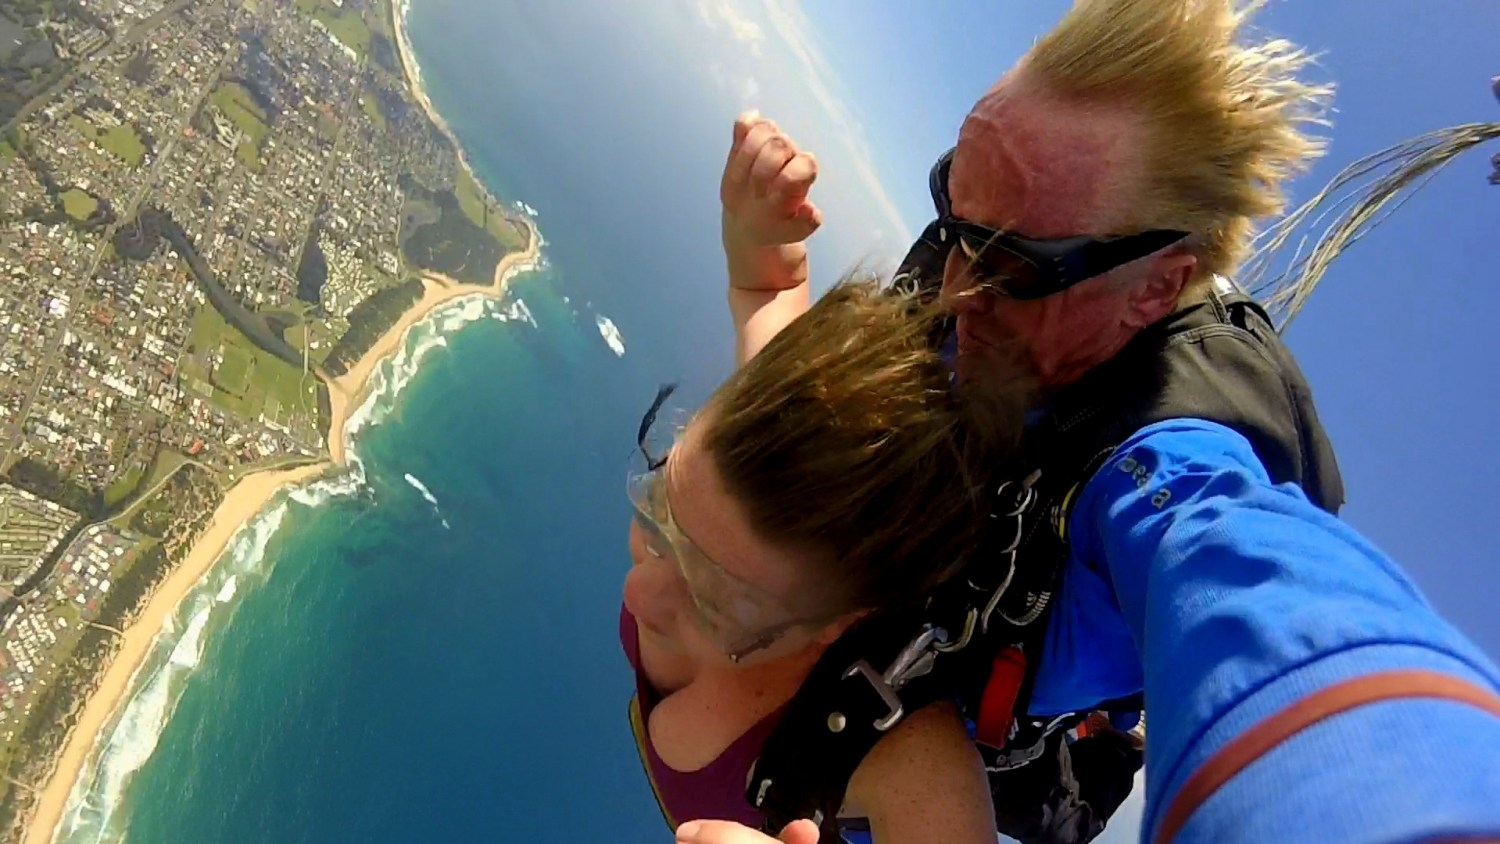 Wollongong Skydive Review